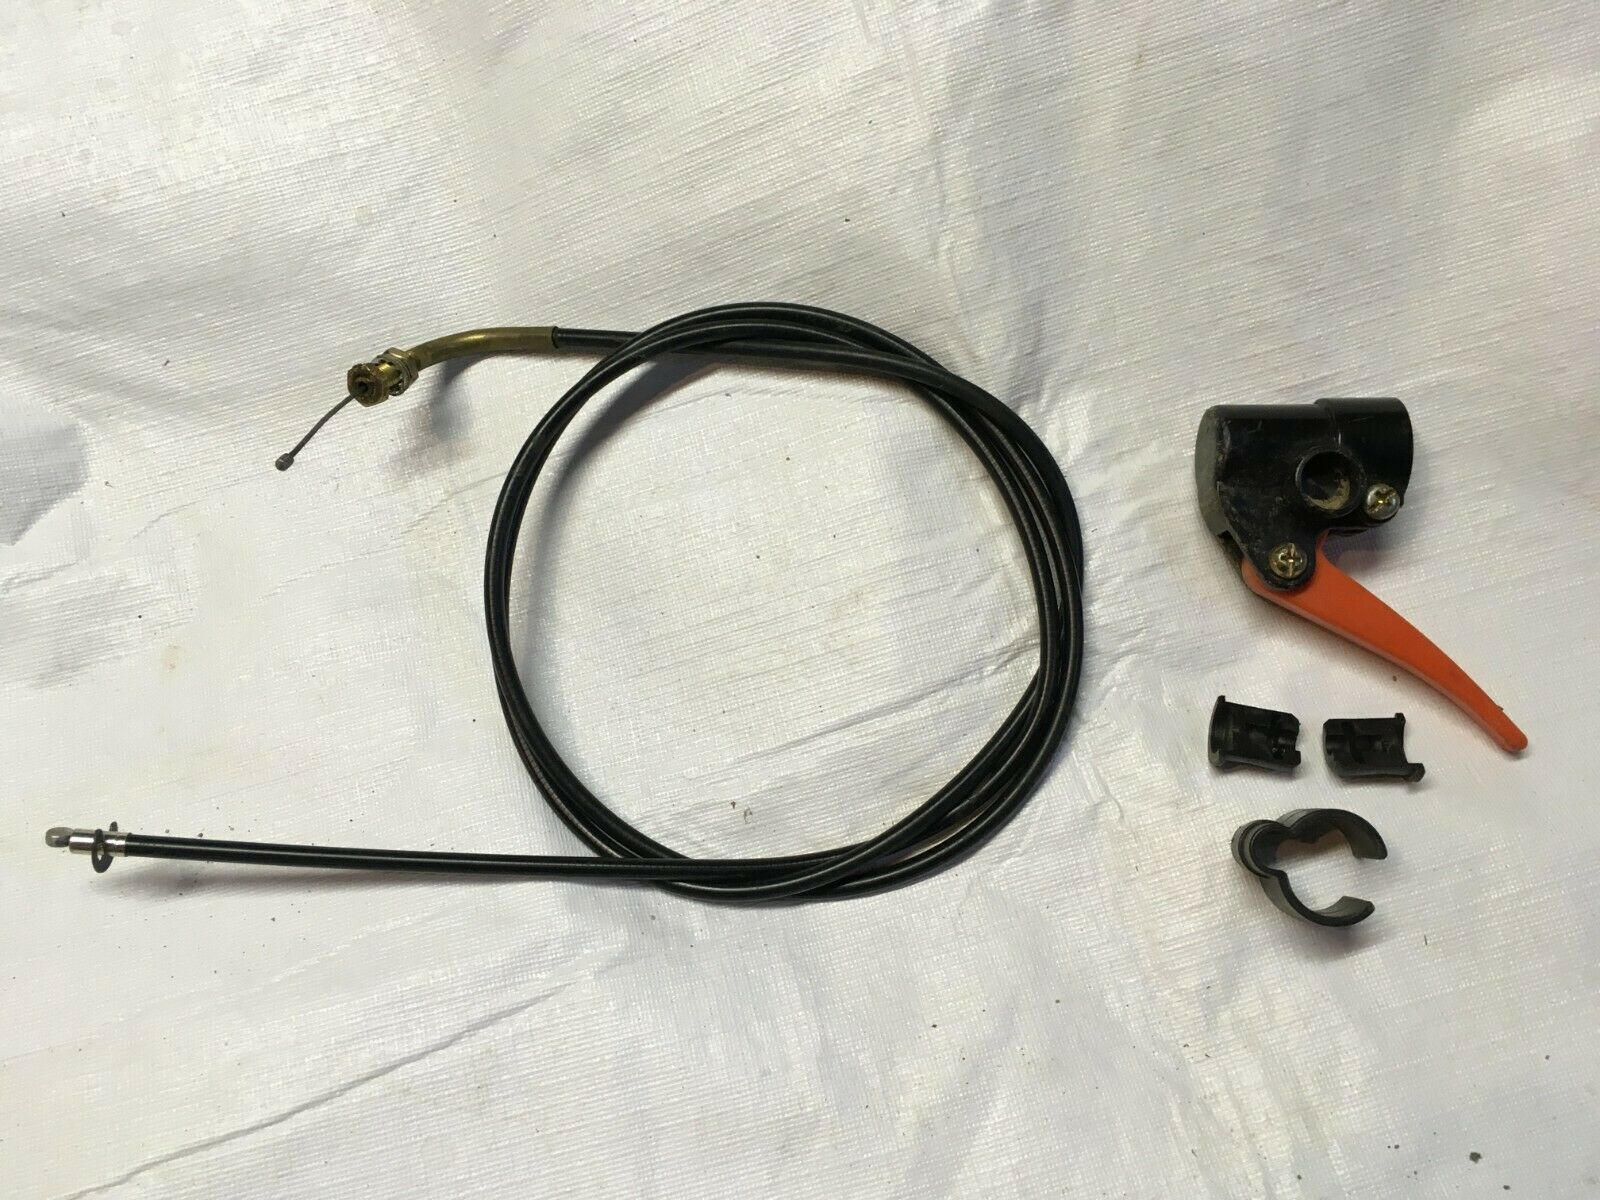 ECHO TC210 Throttle Cable & Trigger Assembly - $25.00